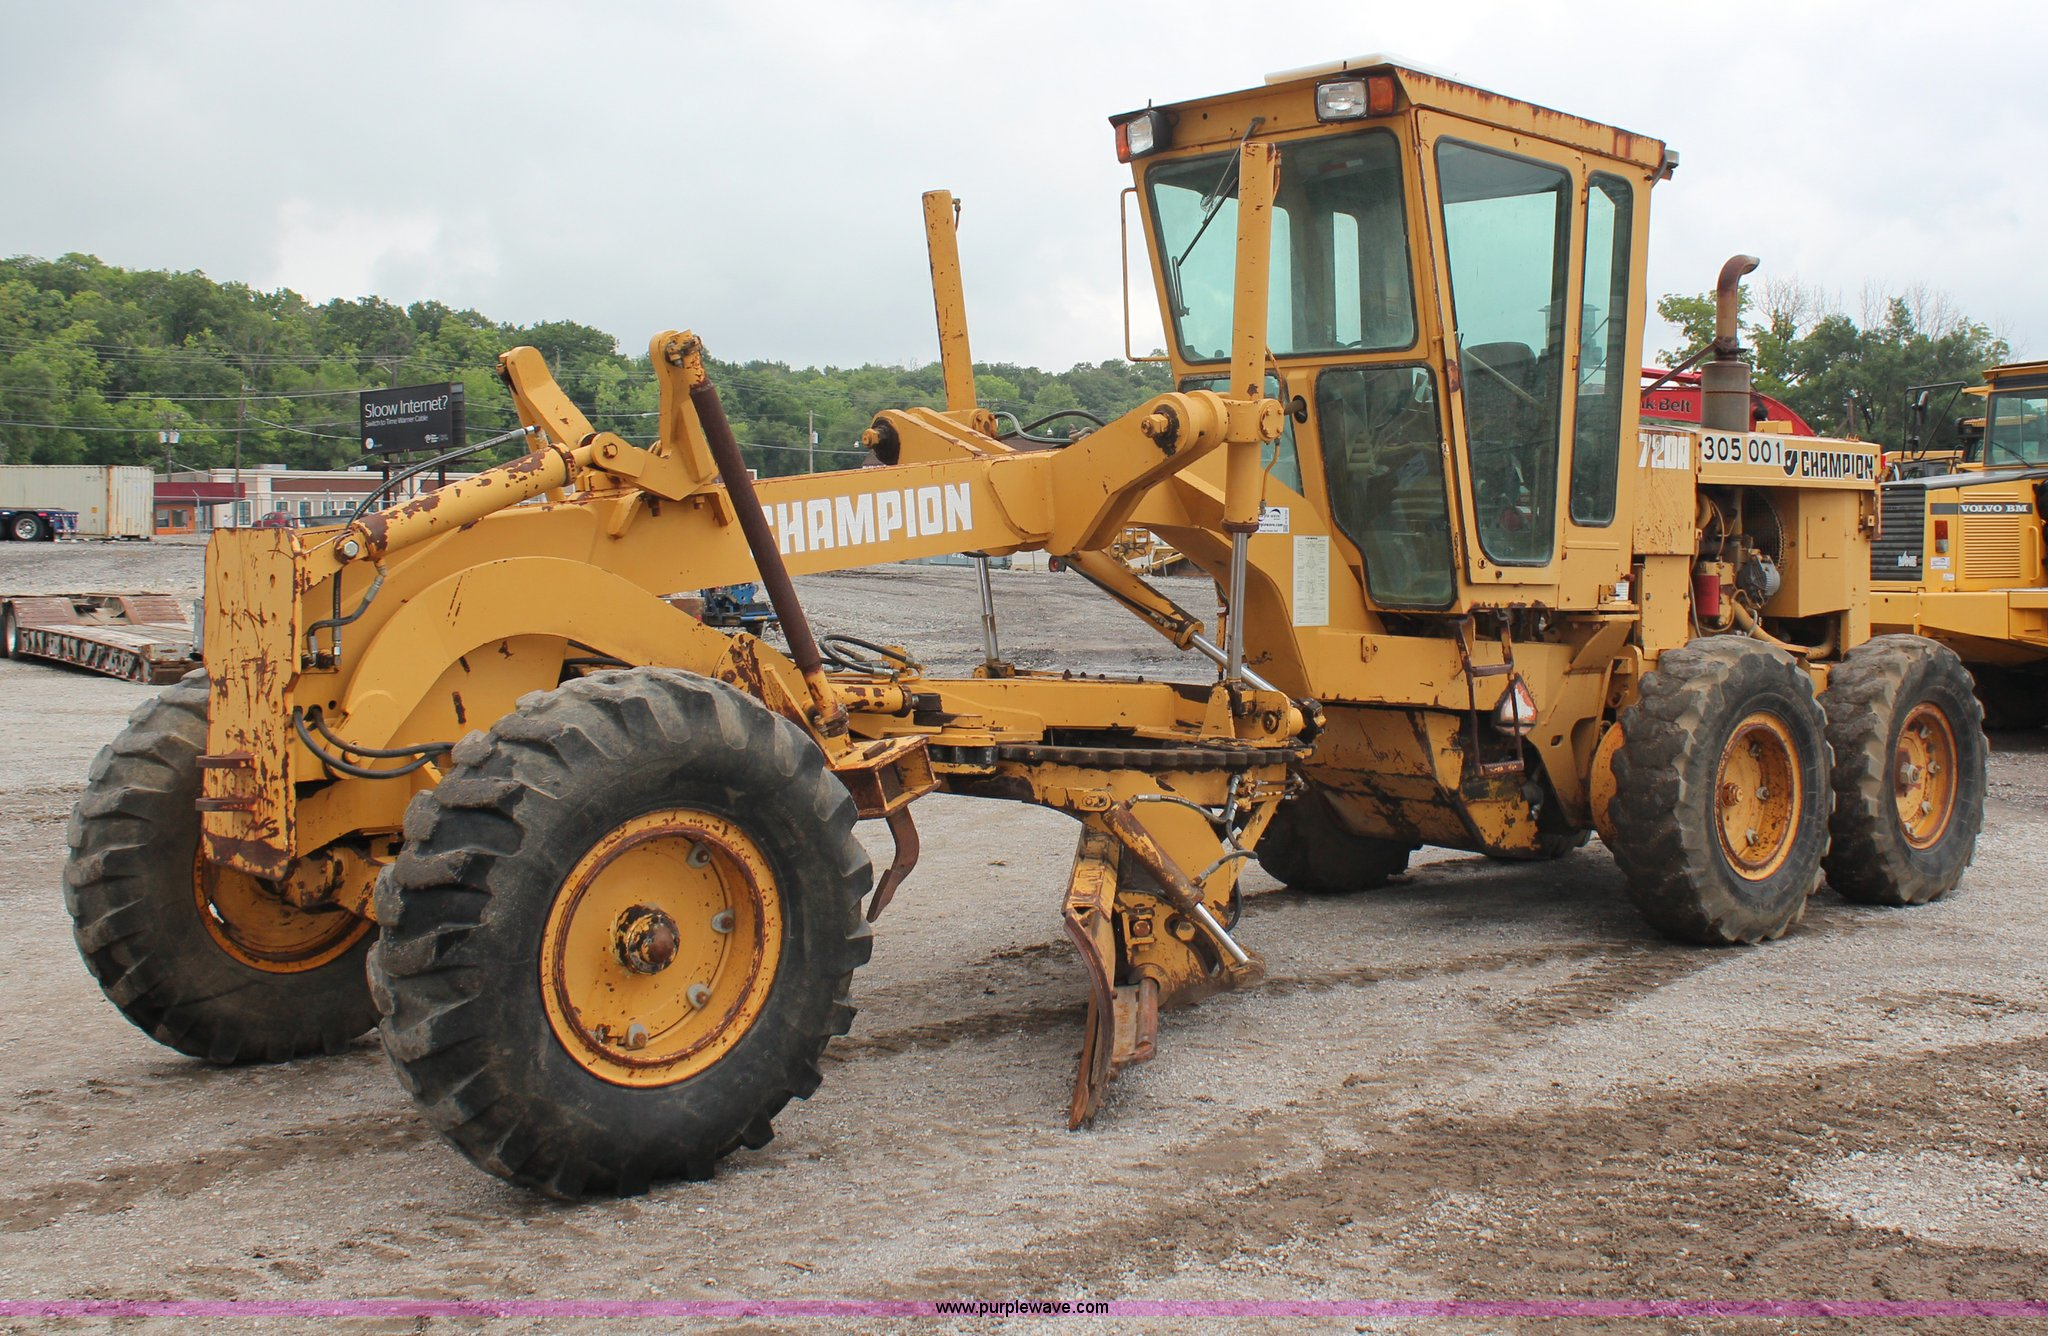 H6720 image for item H6720 1989 Champion 720A articulated motor grader